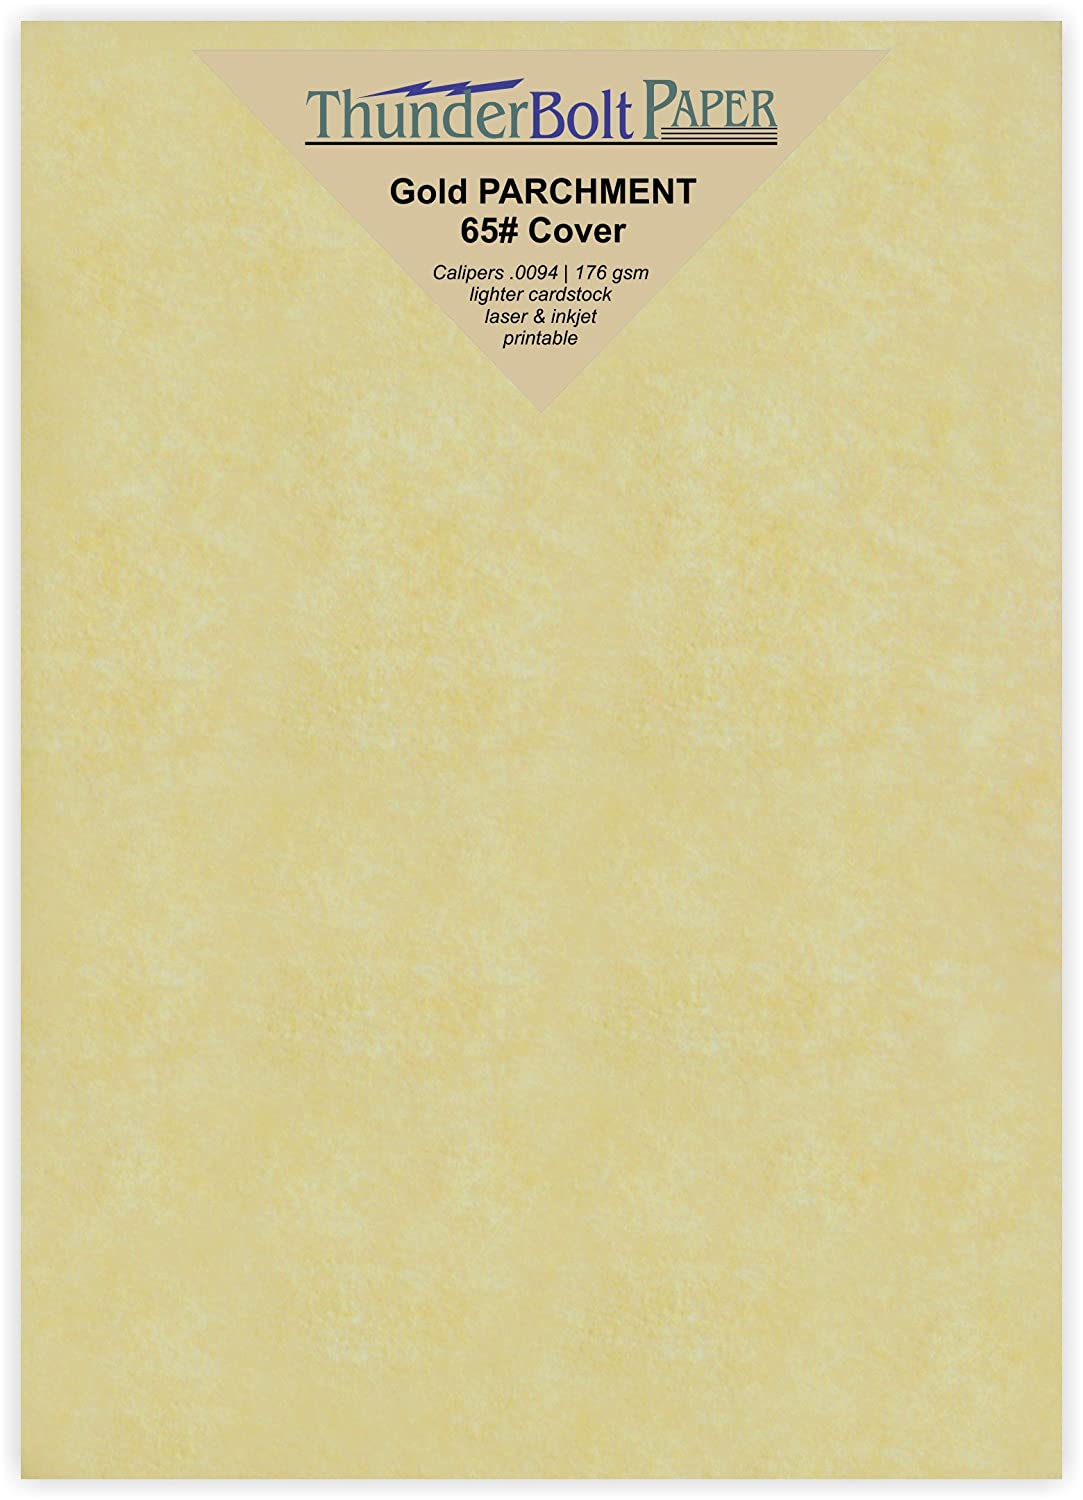 Gold color cardstock paper 5x7 - Amazon Com 100 Gold Parchment 65lb Cover Weight Paper 5 X 7 5x7 Inches Photo Card Frame Size Printable Cardstock Colored Sheets Old Parchment